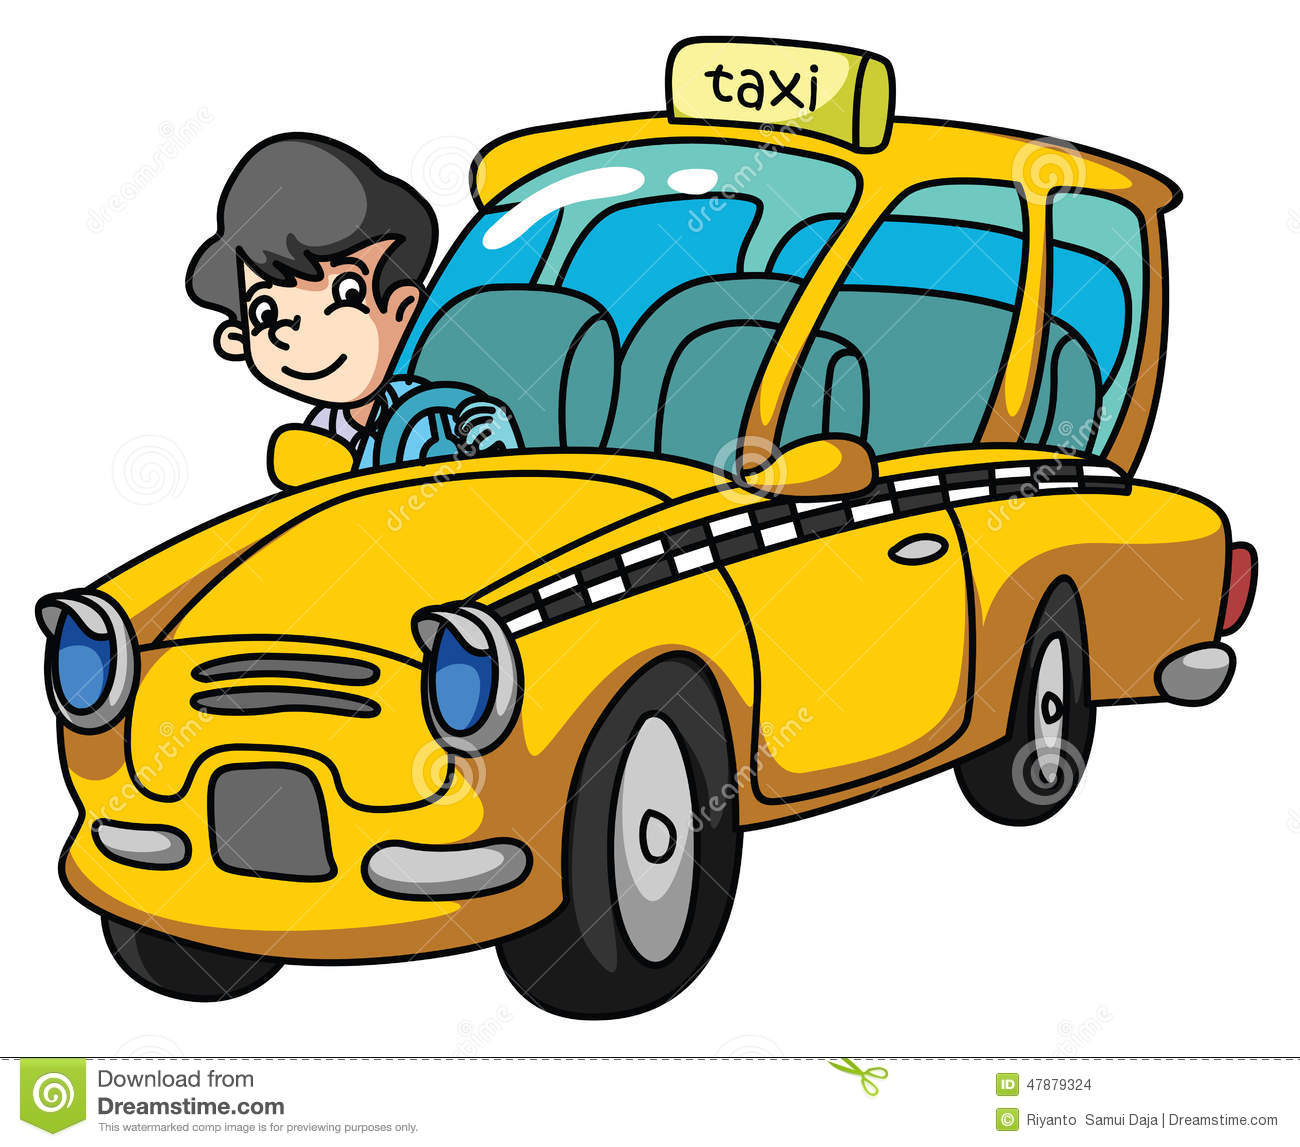 Cab free download best. Driving clipart taxi driver